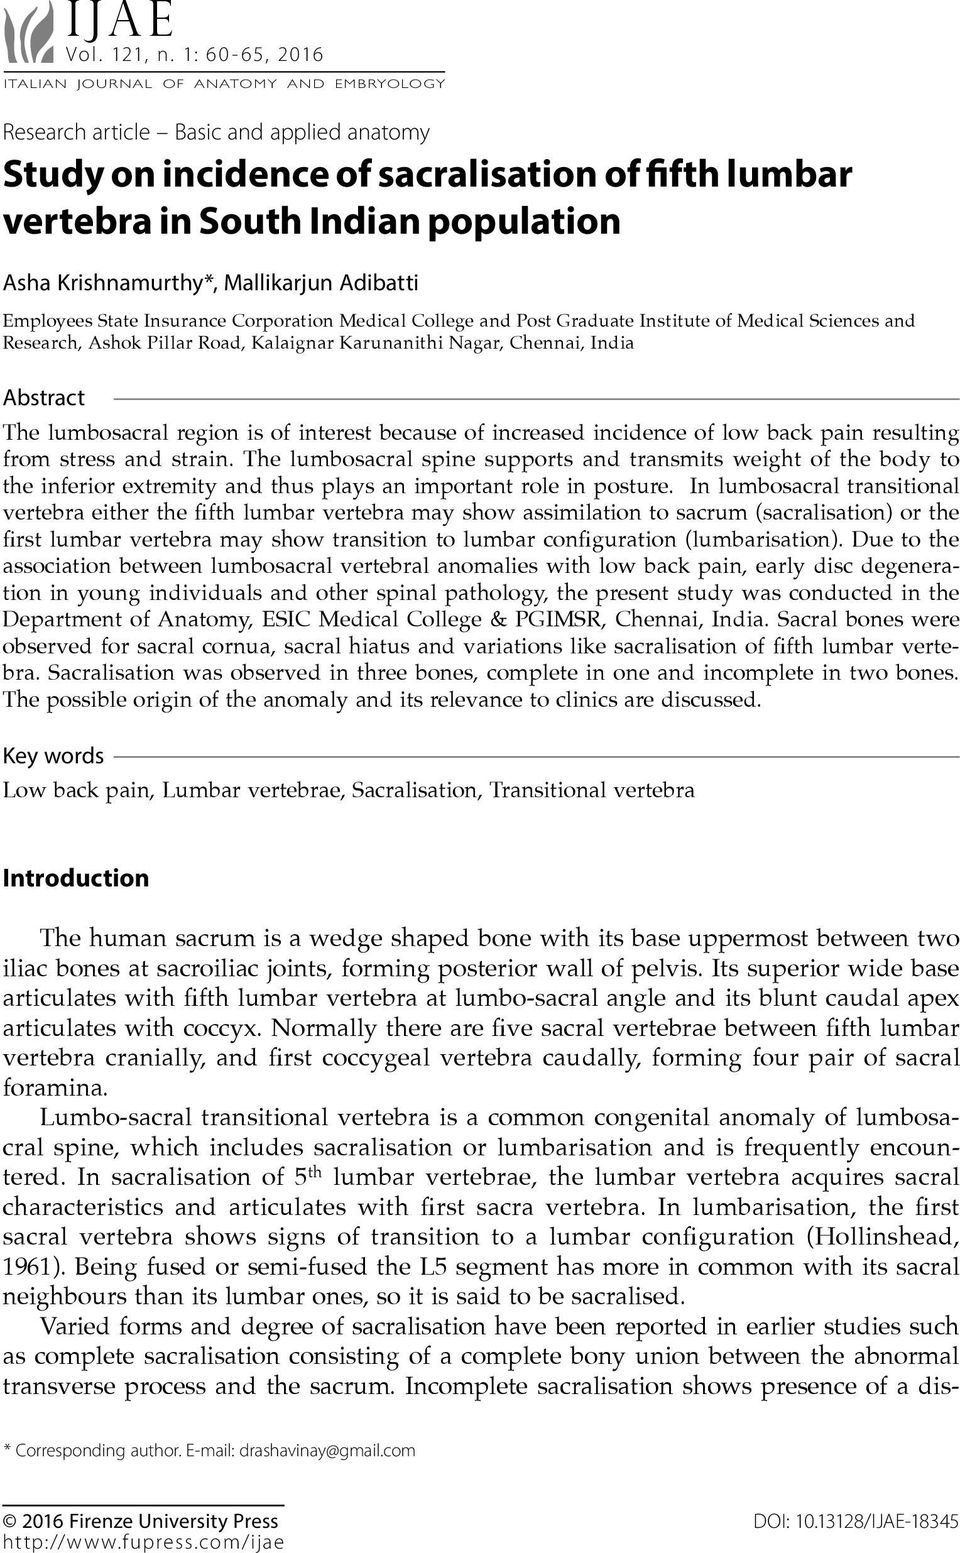 Research Article Basic And Applied Anatomy Study On Incidence Of